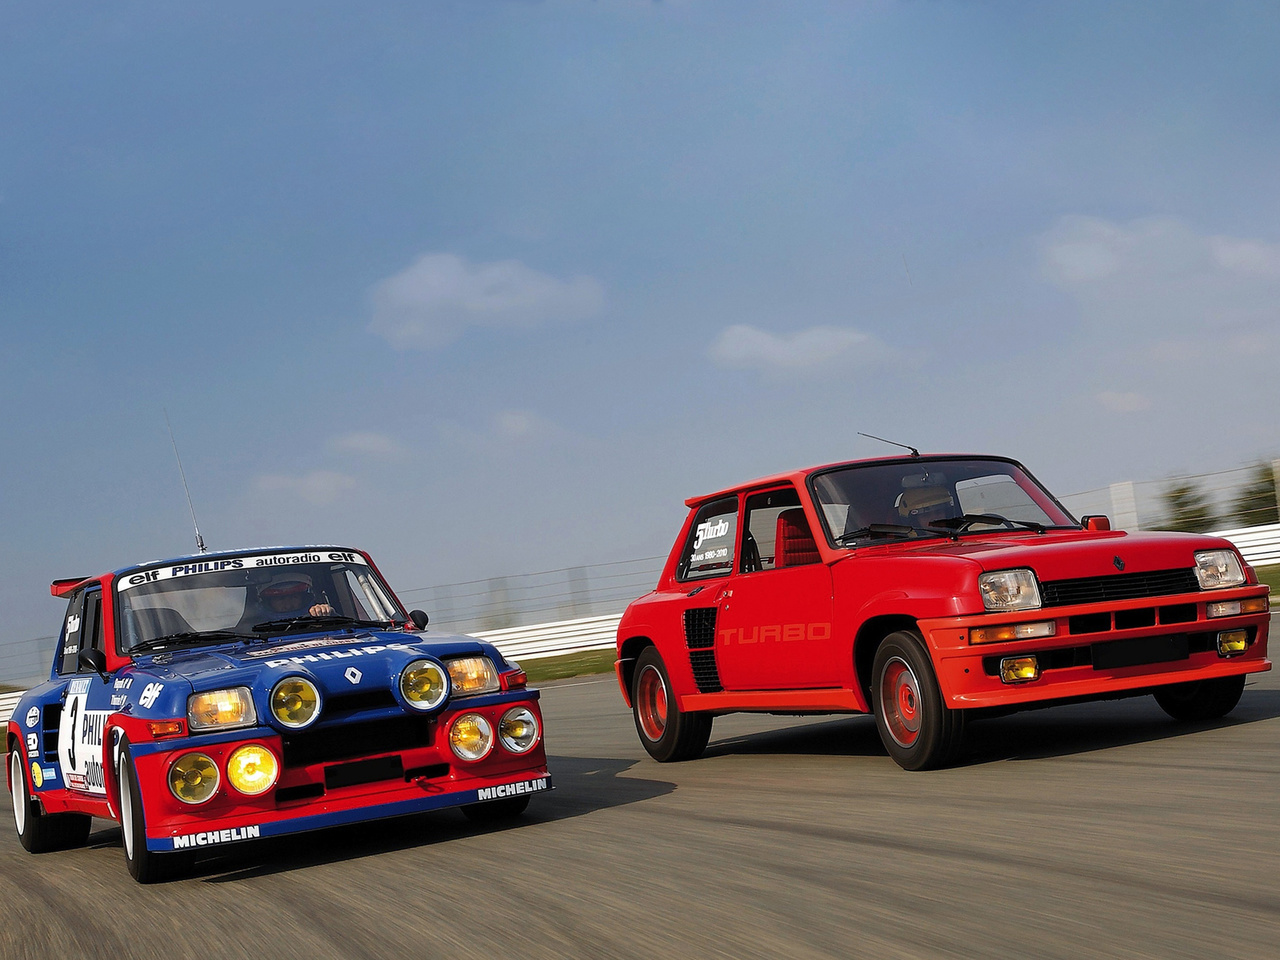 Renault 5 Turbo - rallye - civile